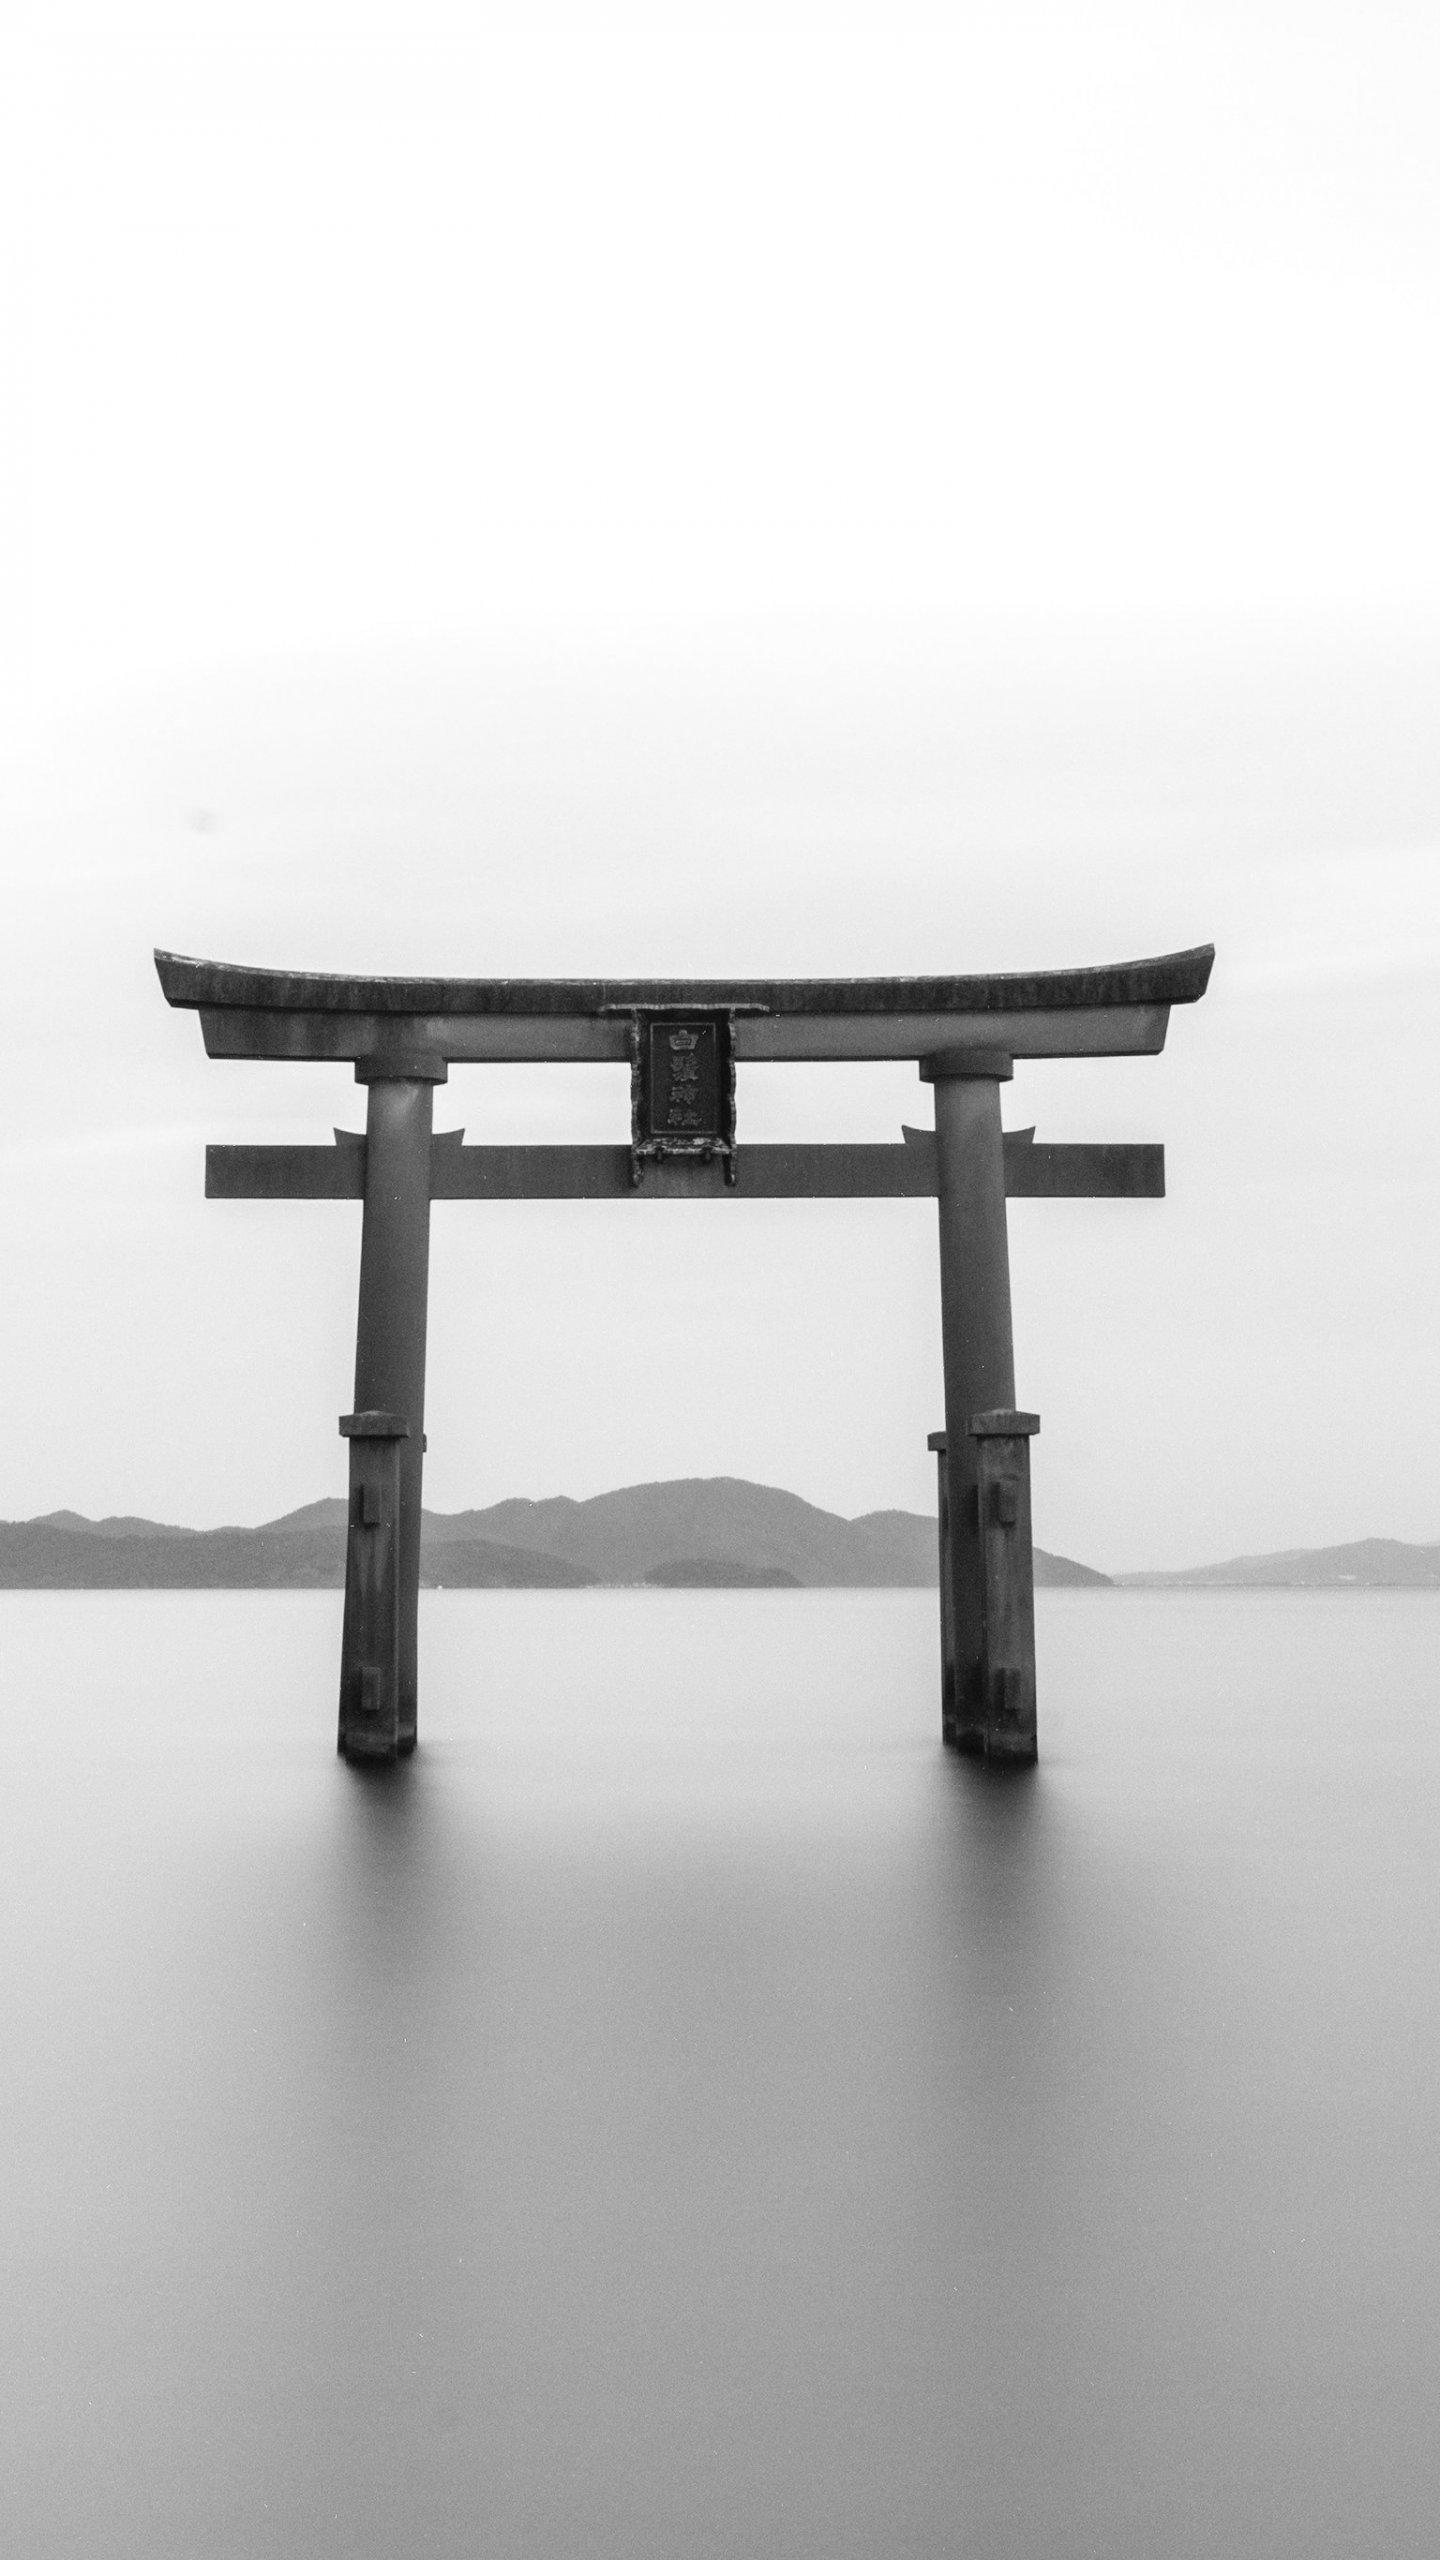 Zen Gate Tori Shrine Wallpapers